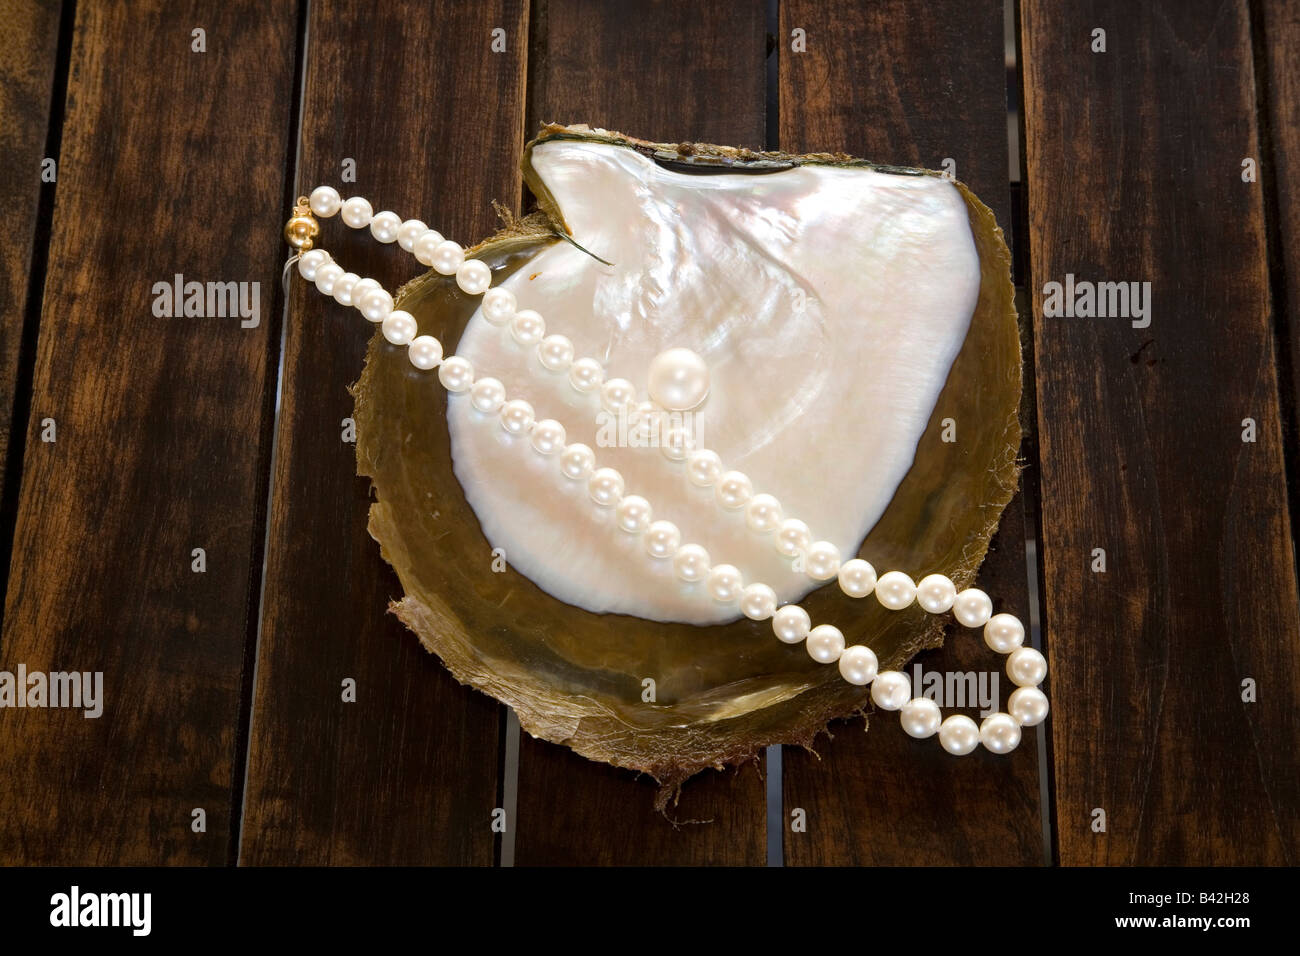 Pearls Farm finished Products made by Pearls Bali Desa Pemuteran Singaraja Indo Pacific Indonesia - Stock Image